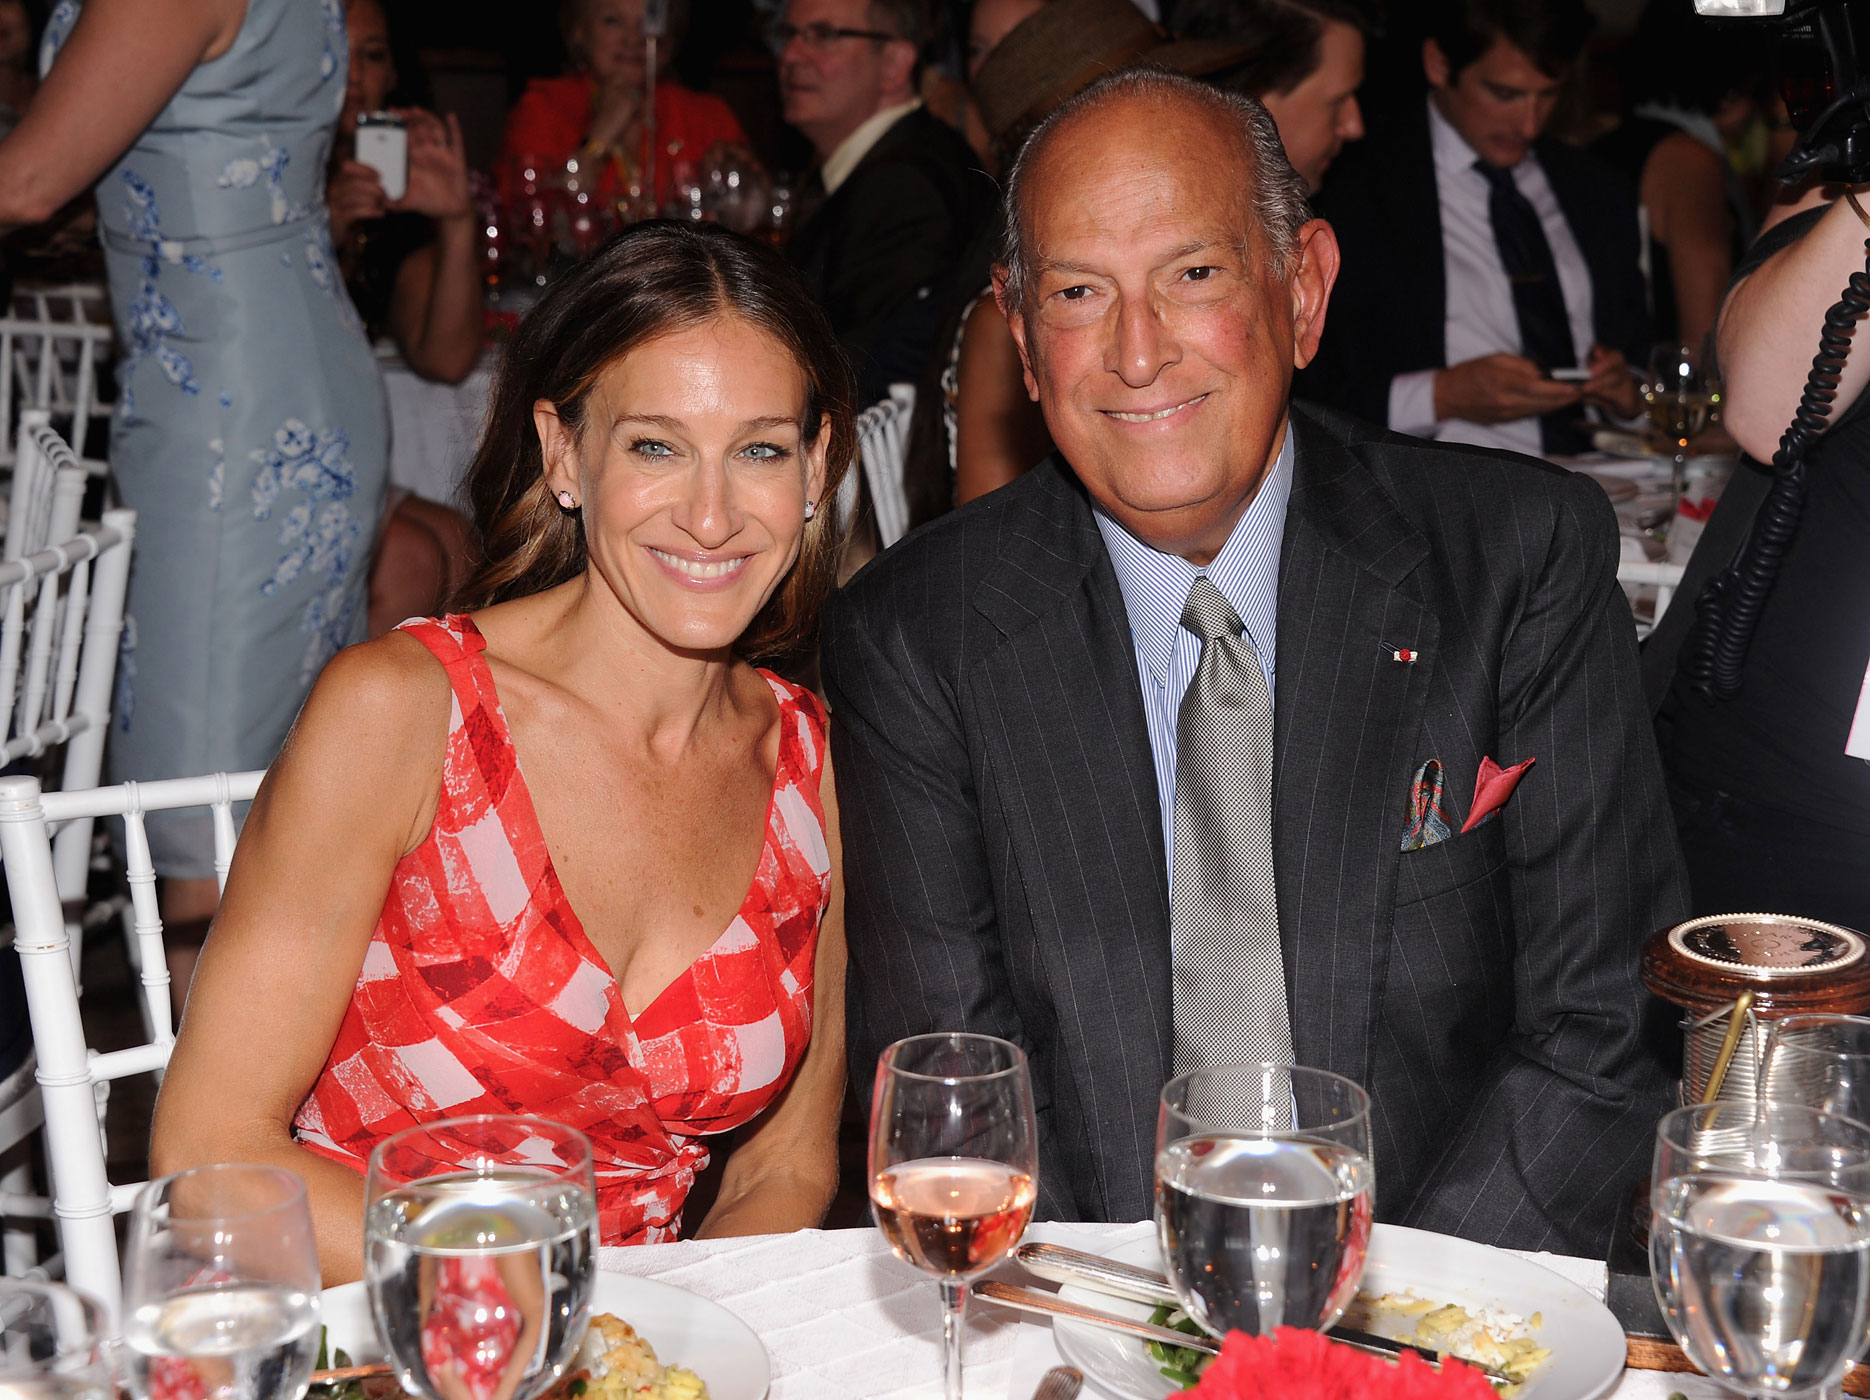 Actress Sarah Jessica Parker and Designer Oscar de la Renta attend the 2012 Couture Council for the Museum at FIT Award for Artistry of Fashion to Oscar de la Renta at the David H. Koch Theater at Lincoln Center on September 5, 2012 in New York City.